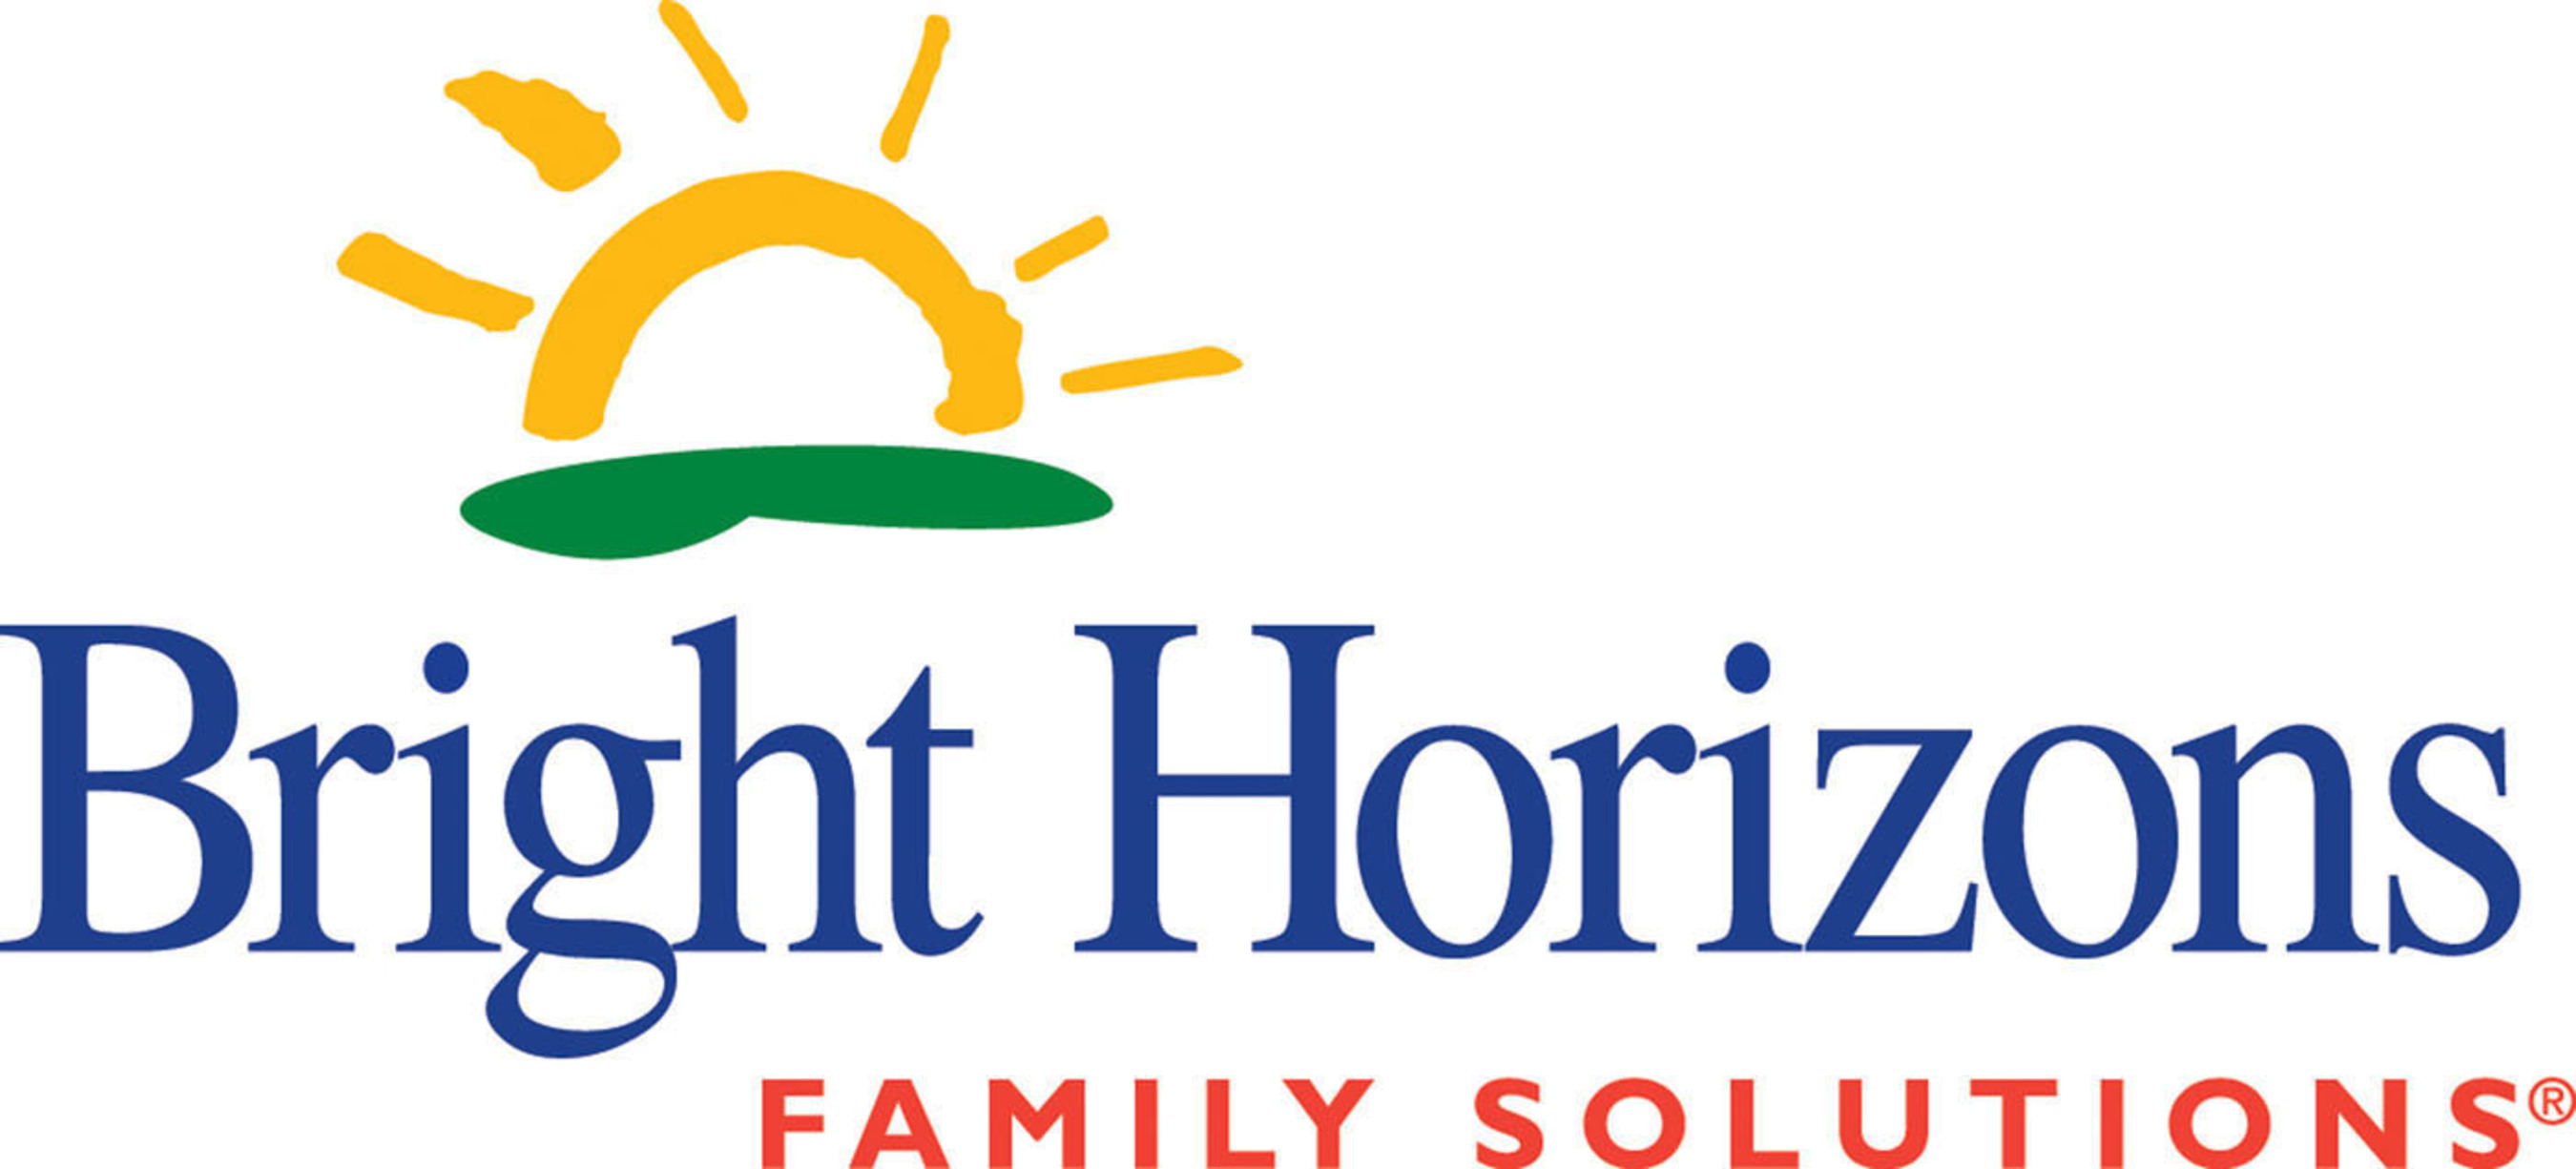 Bright Horizons Family Solutions(R) is a leading provider of employer-sponsored child care, early education, and work/life solutions. (PRNewsFoto/Bright Horizons Family Solutions) (PRNewsFoto/BRIGHT HORIZONS FAMILY SOLUTIONS)